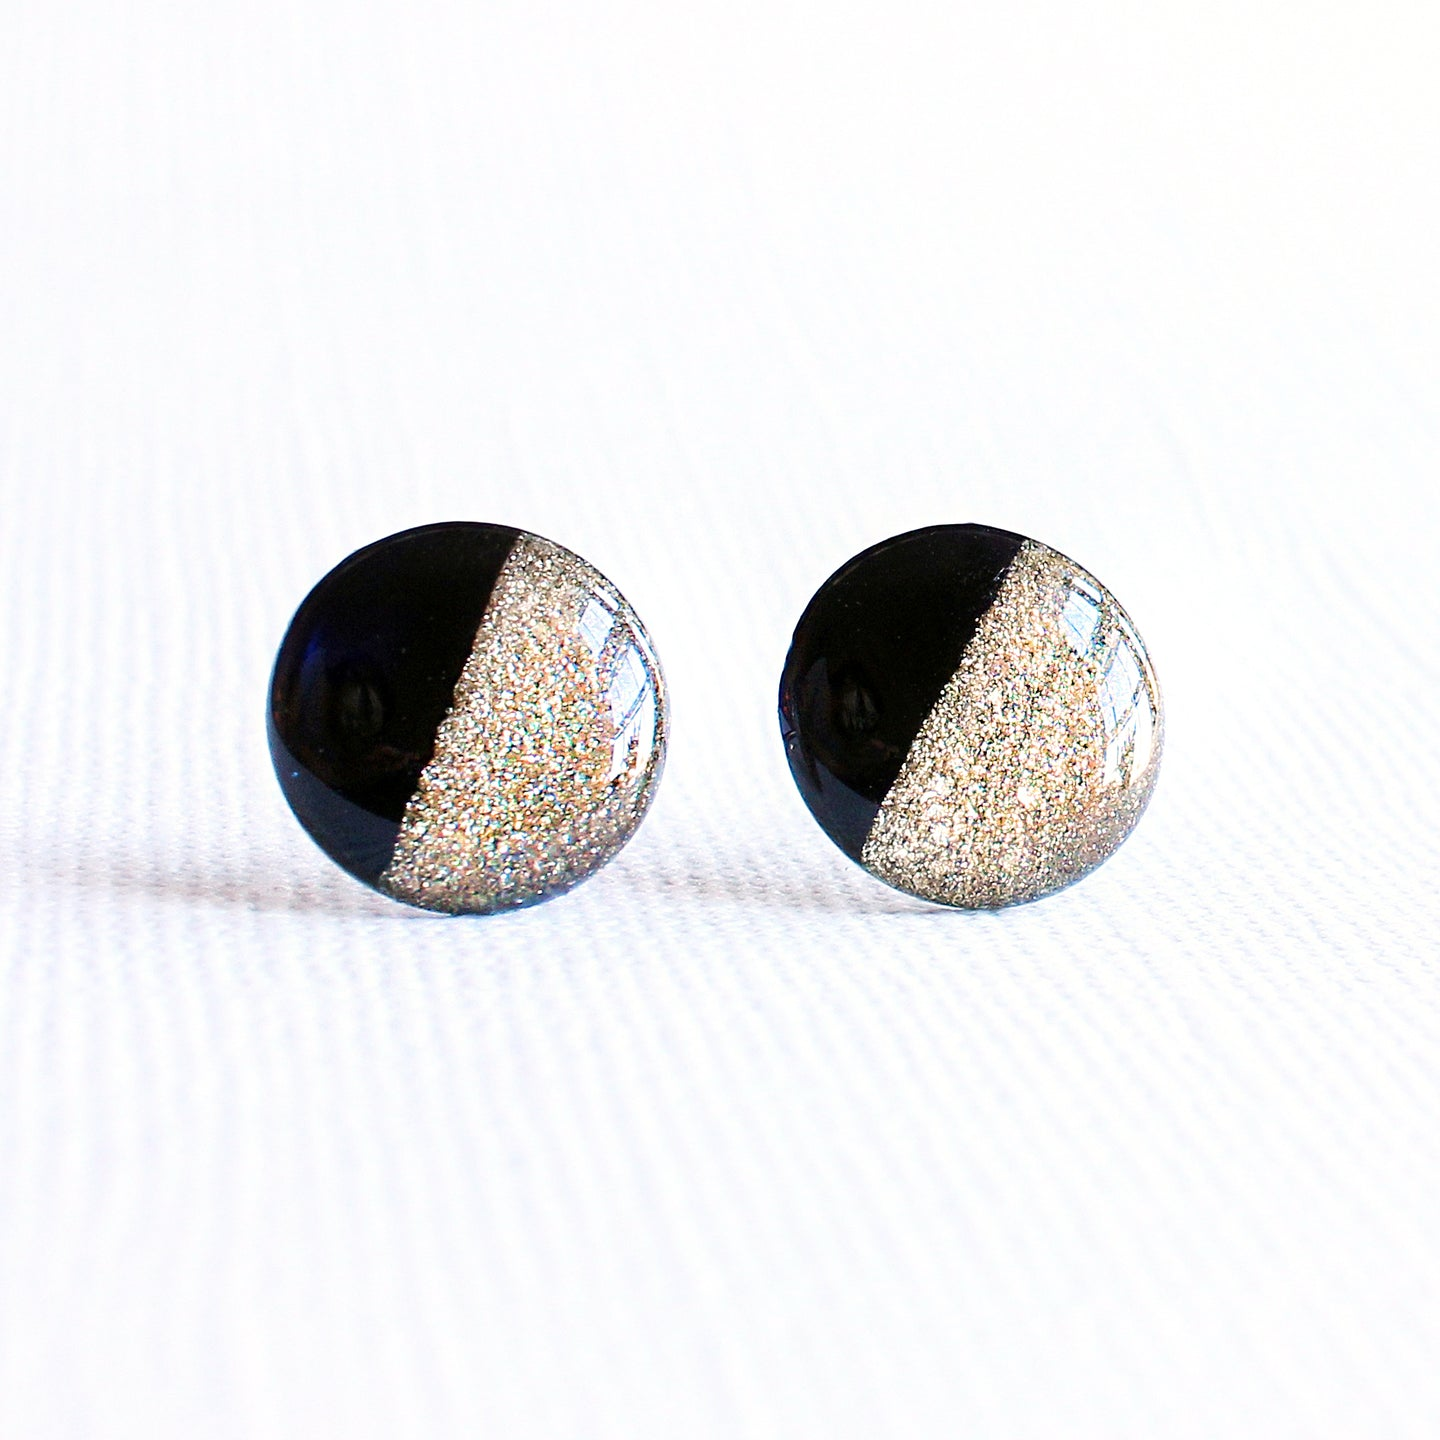 Black & Gold Color Block Stud Earrings